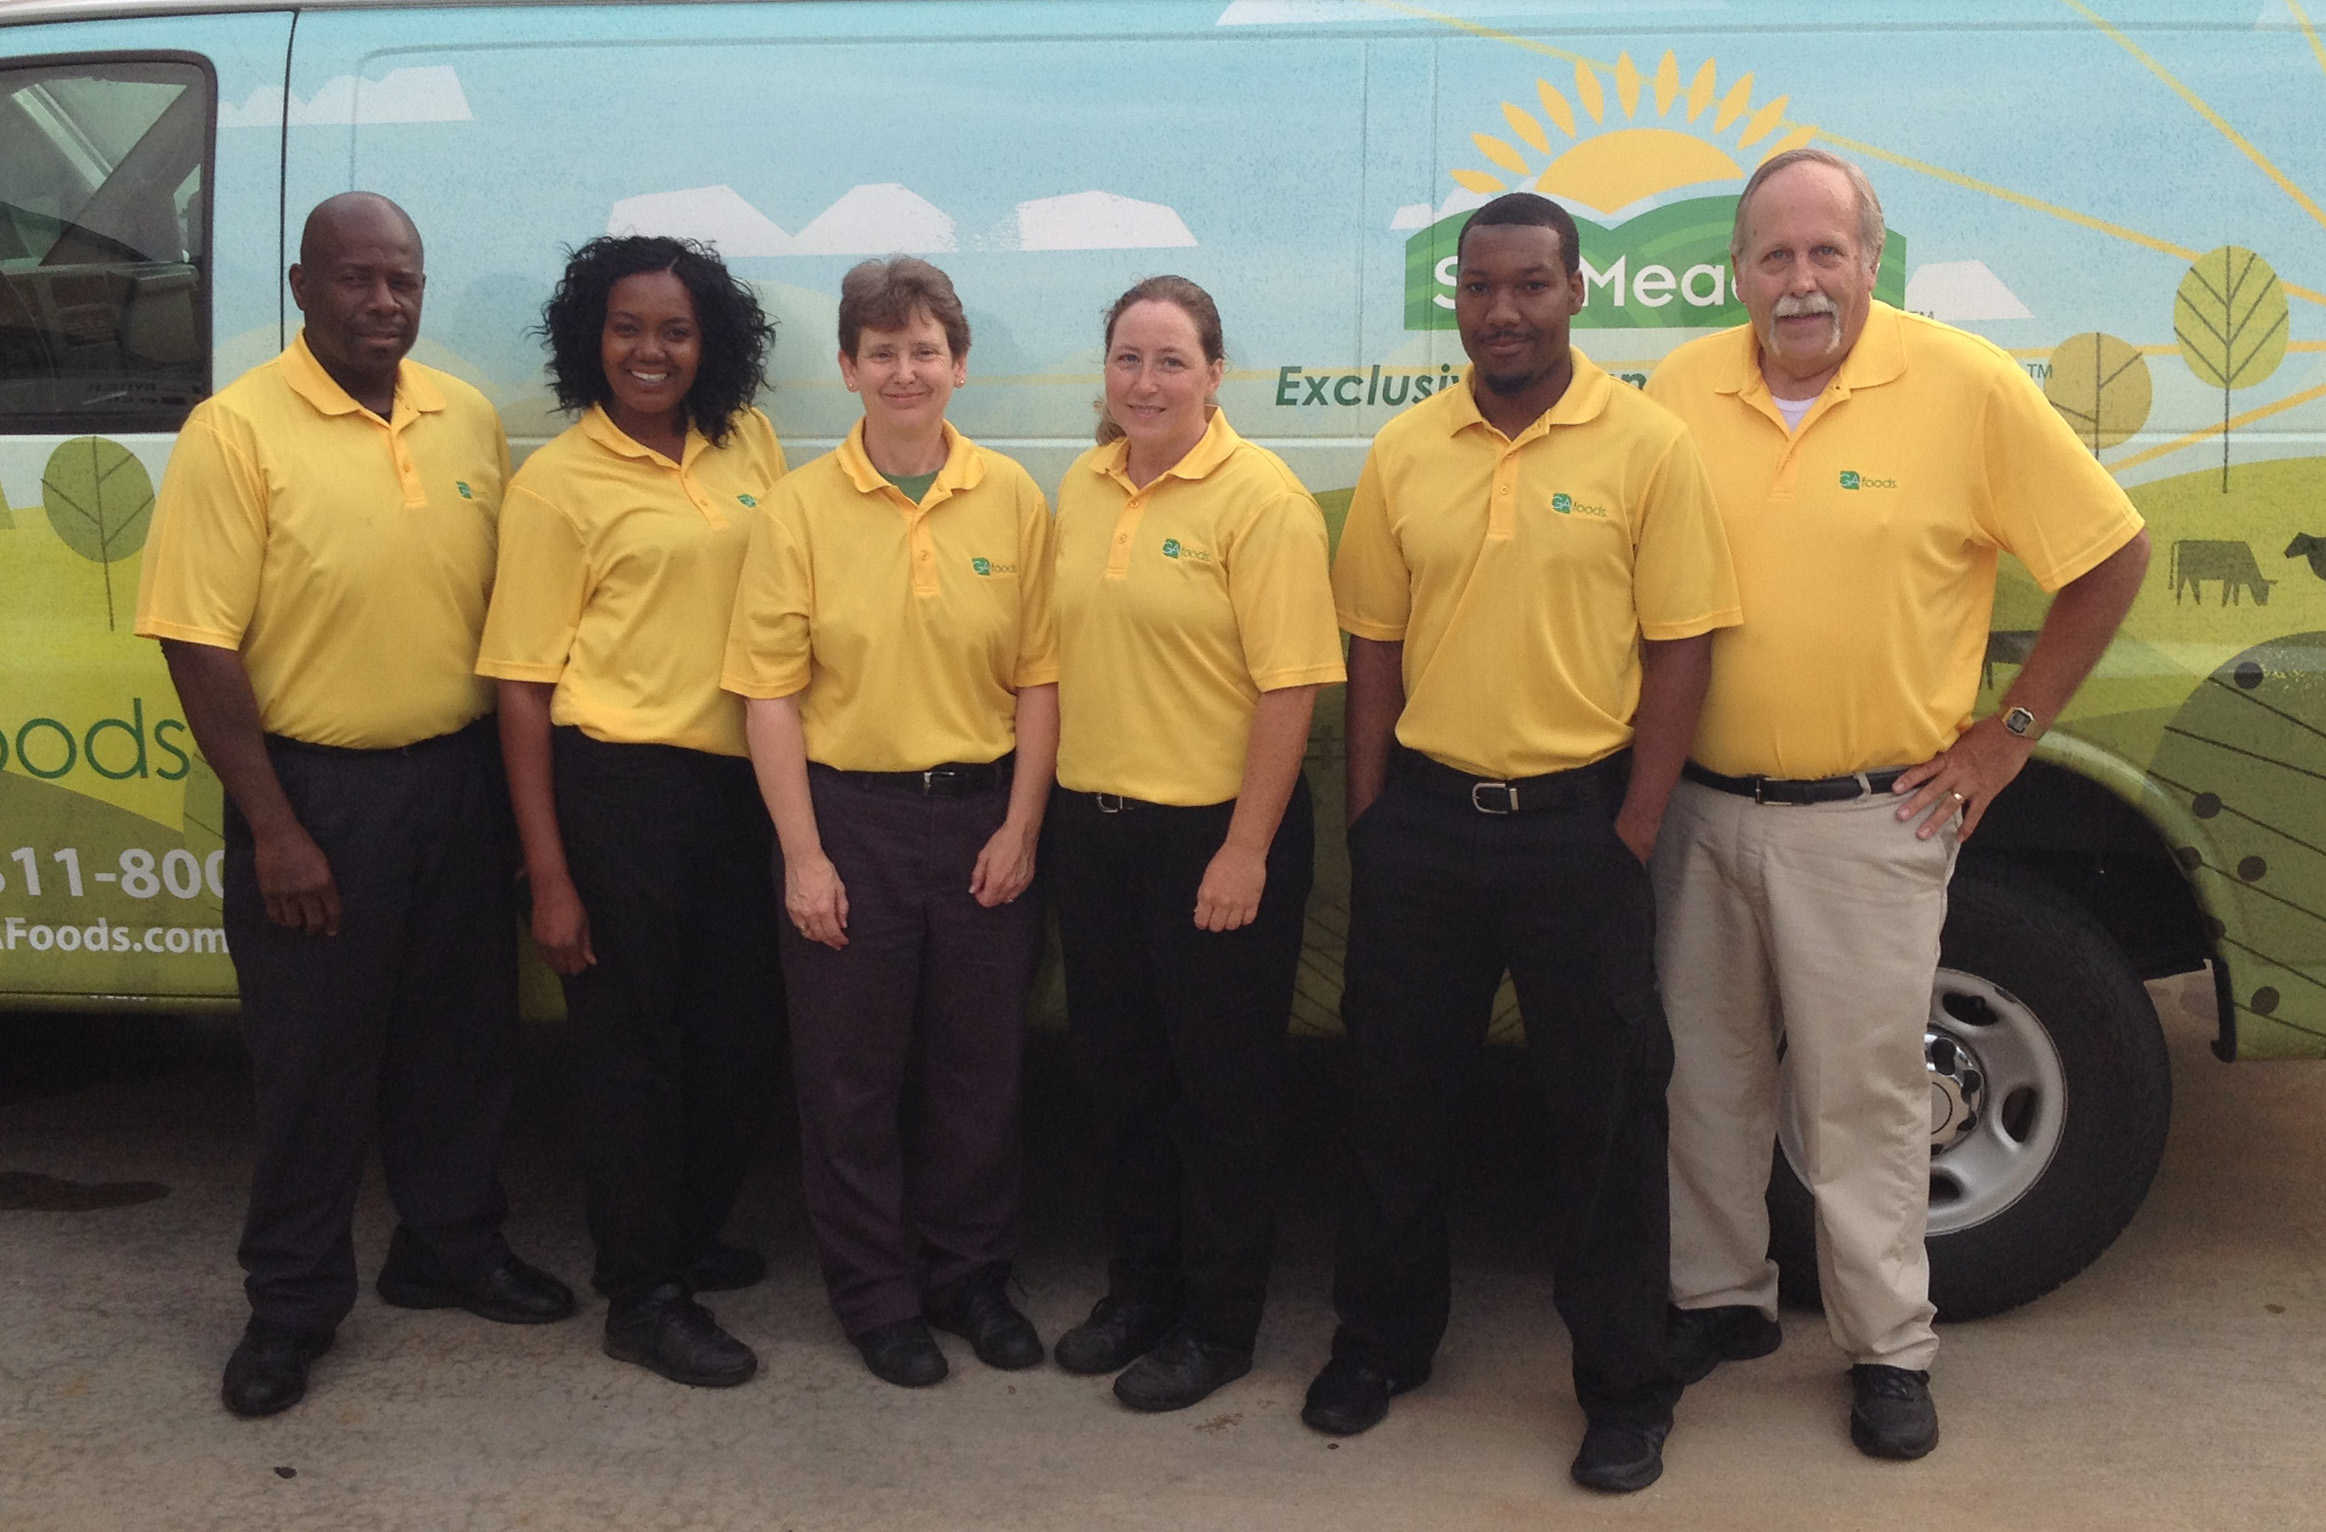 Join the G.A. Foods Team! Your opportunity for success may be right here!